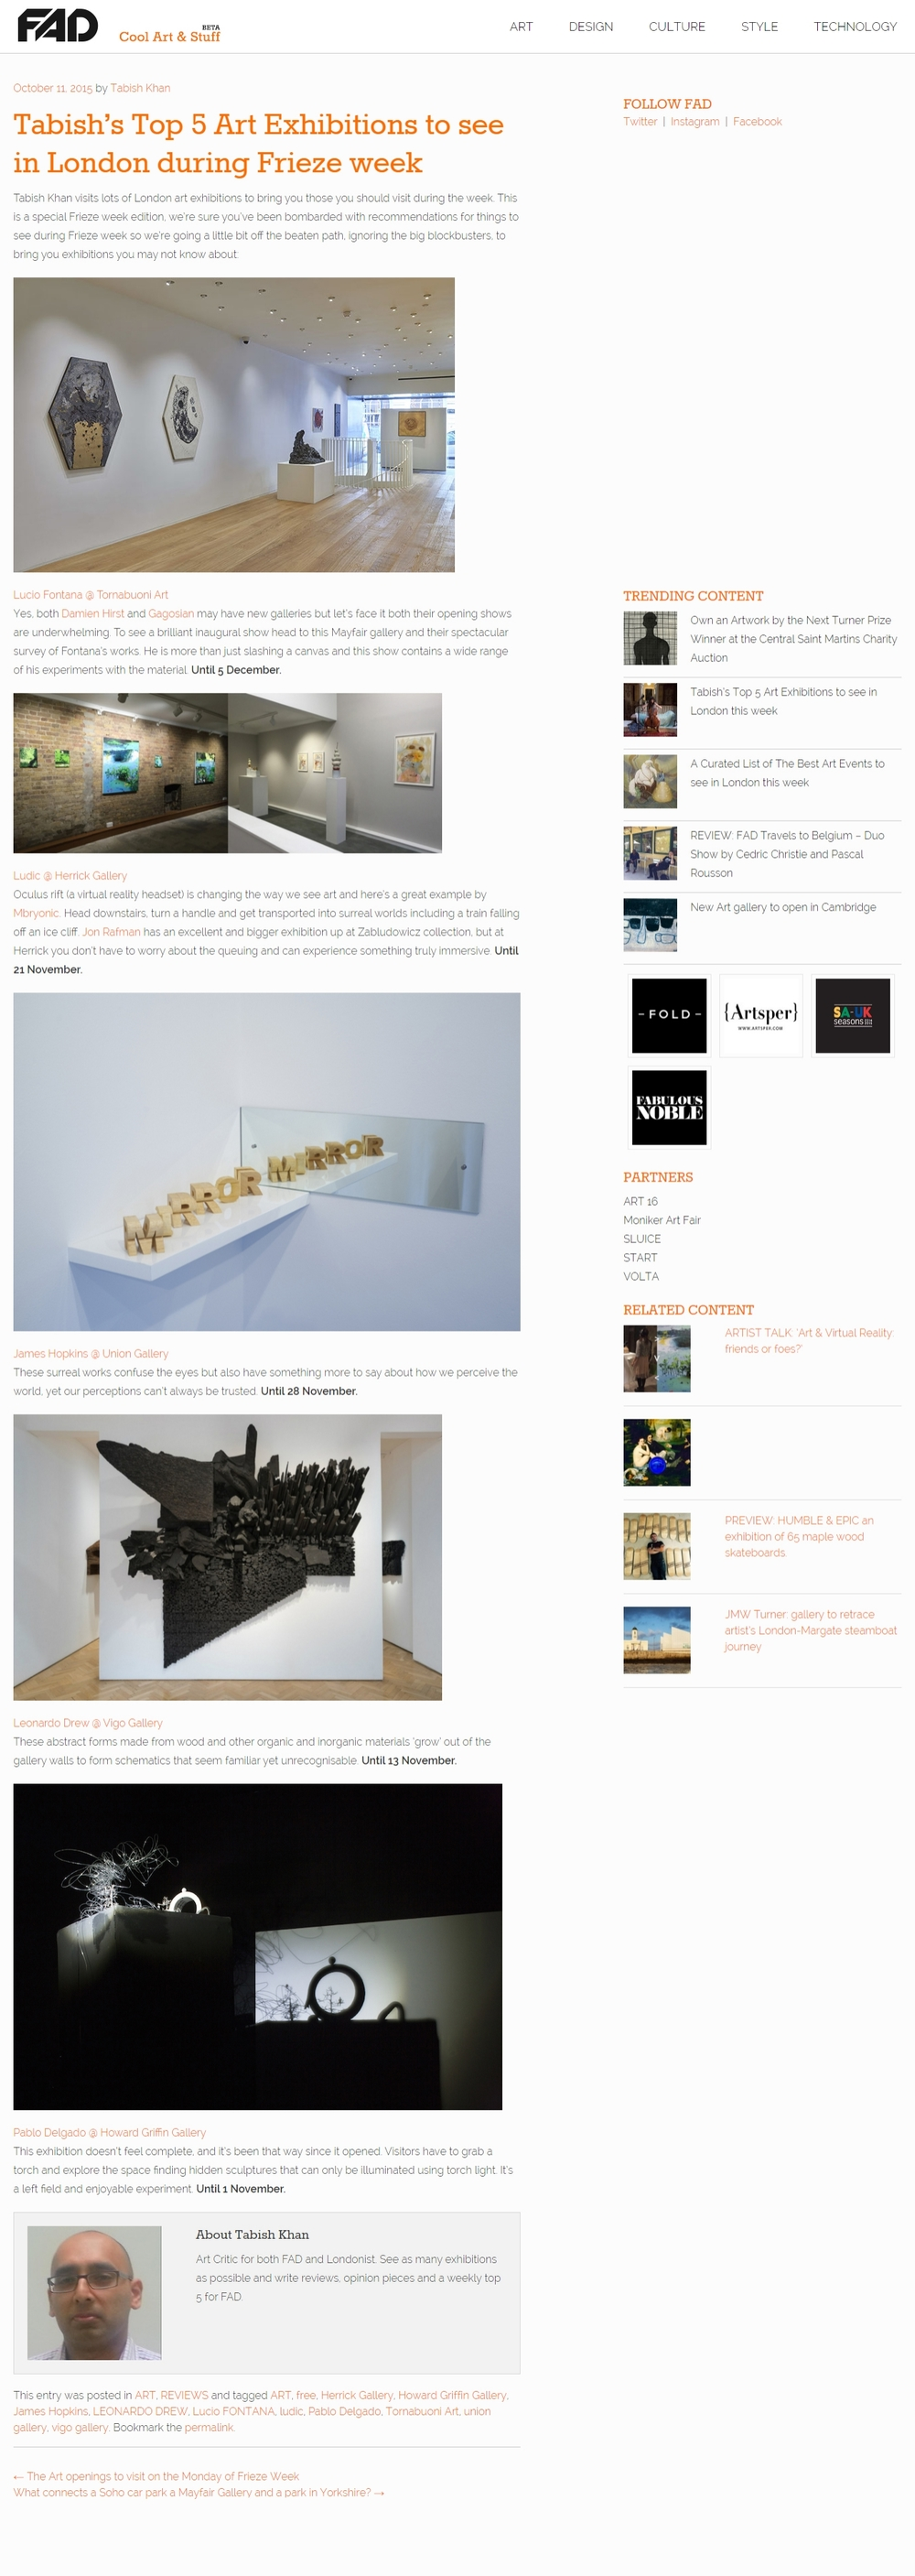 fadmagazine-com-2015-10-11-tabishs-top-5-art-exhibitions-to-see-in-london-during-frieze-week-1448118856355 copy.jpg